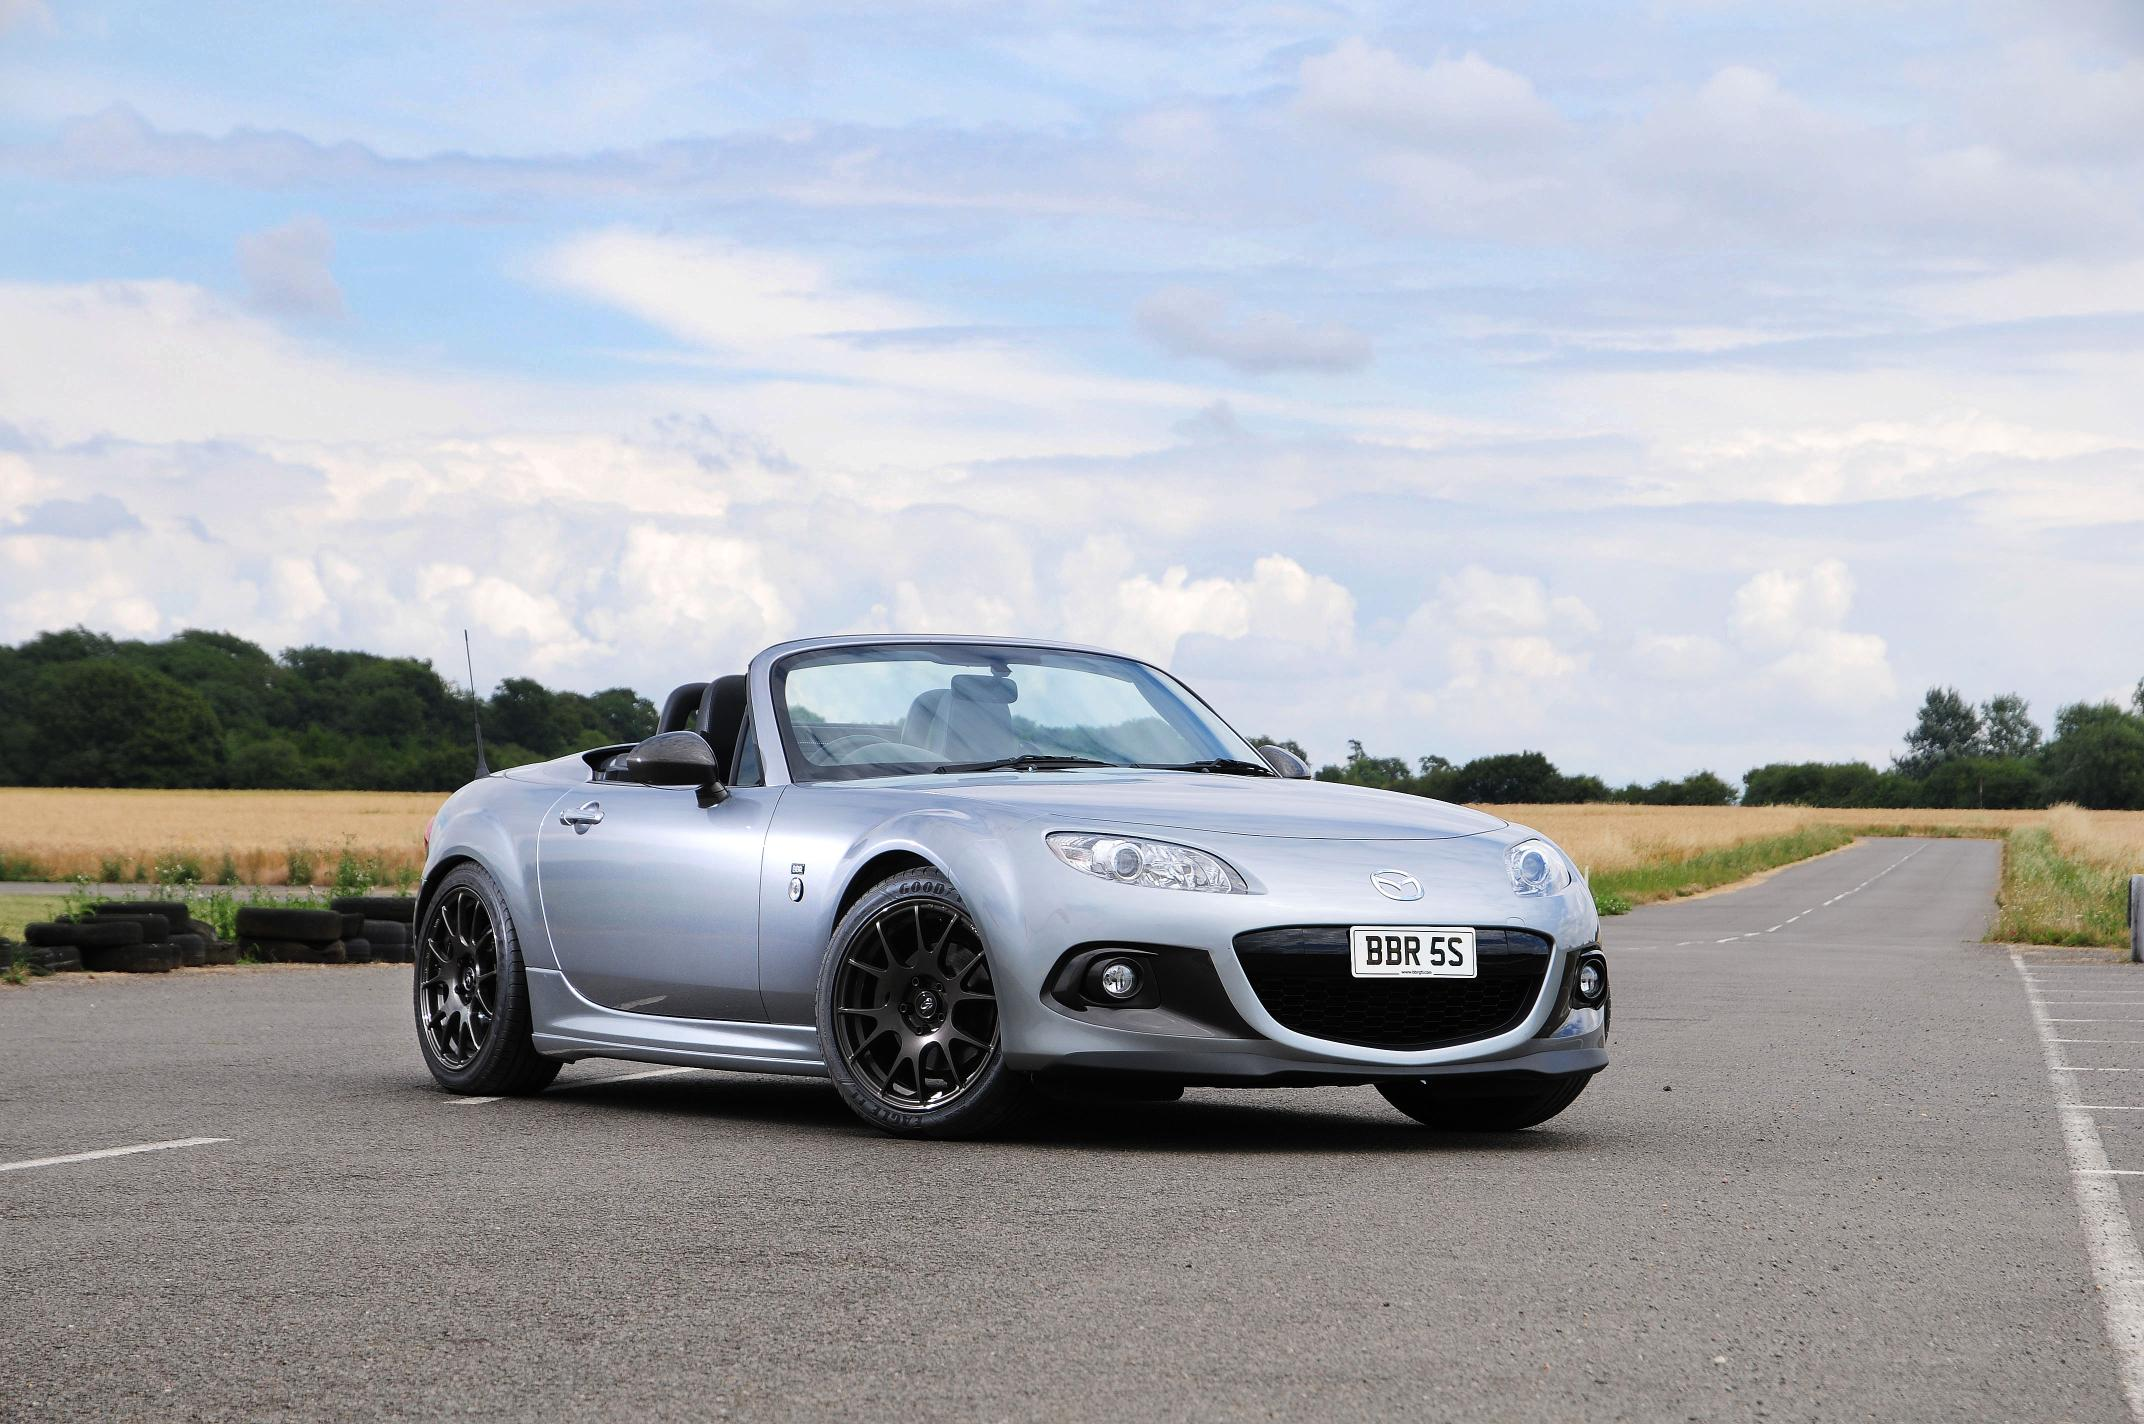 bbr super 200 mazda mx 5 tuning package detailed priced at 2 195 autoevolution. Black Bedroom Furniture Sets. Home Design Ideas